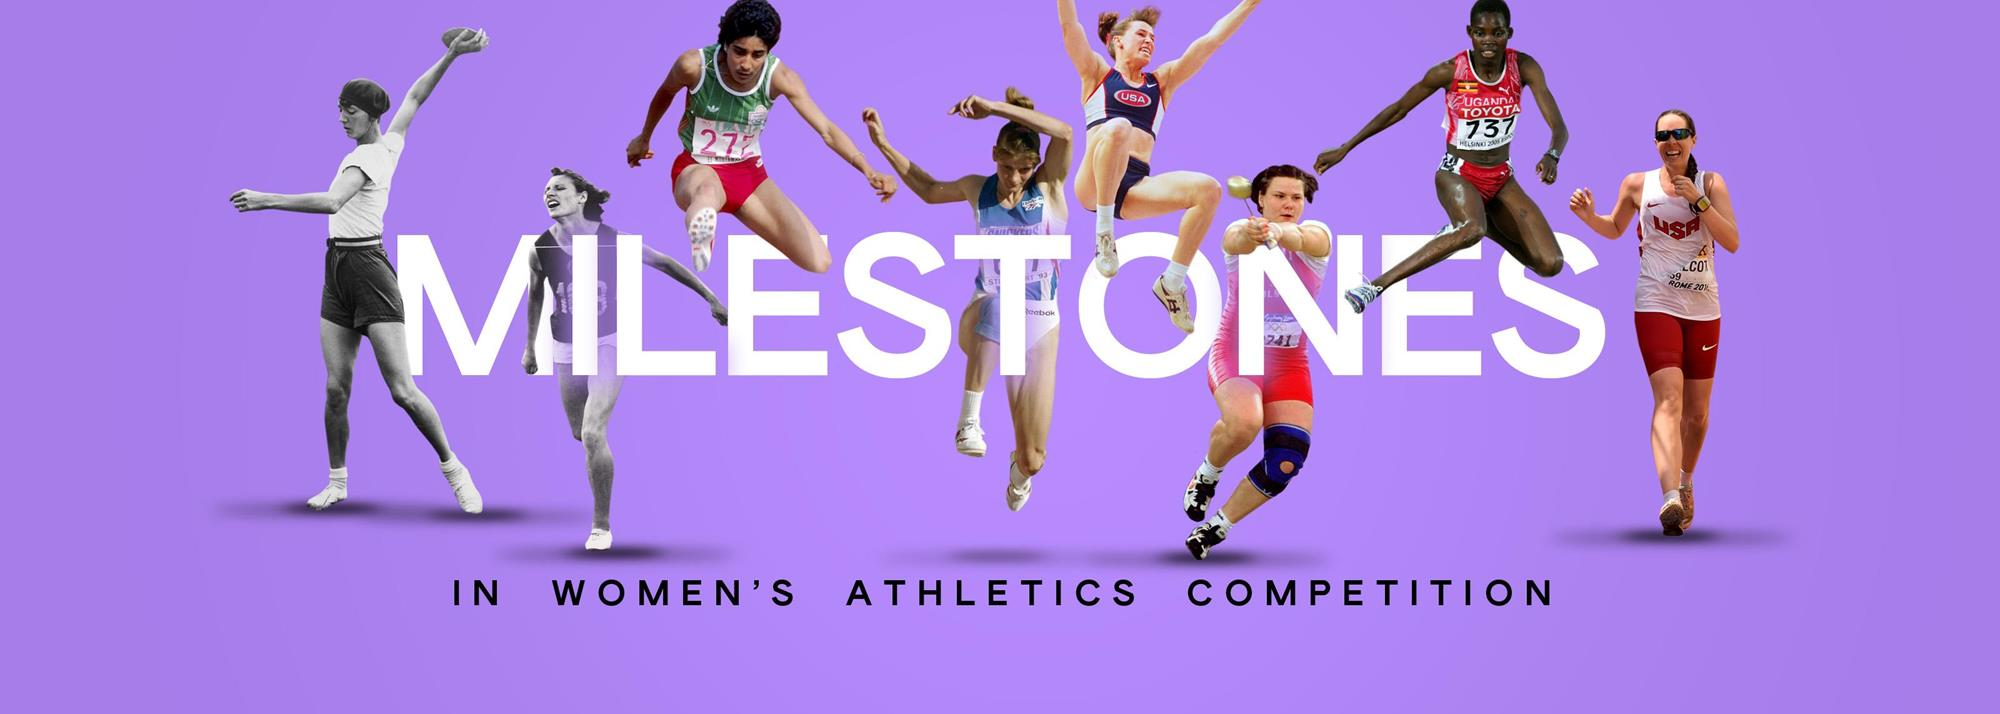 The 100-year journey of women's athletics disciplines reaching parity with men's